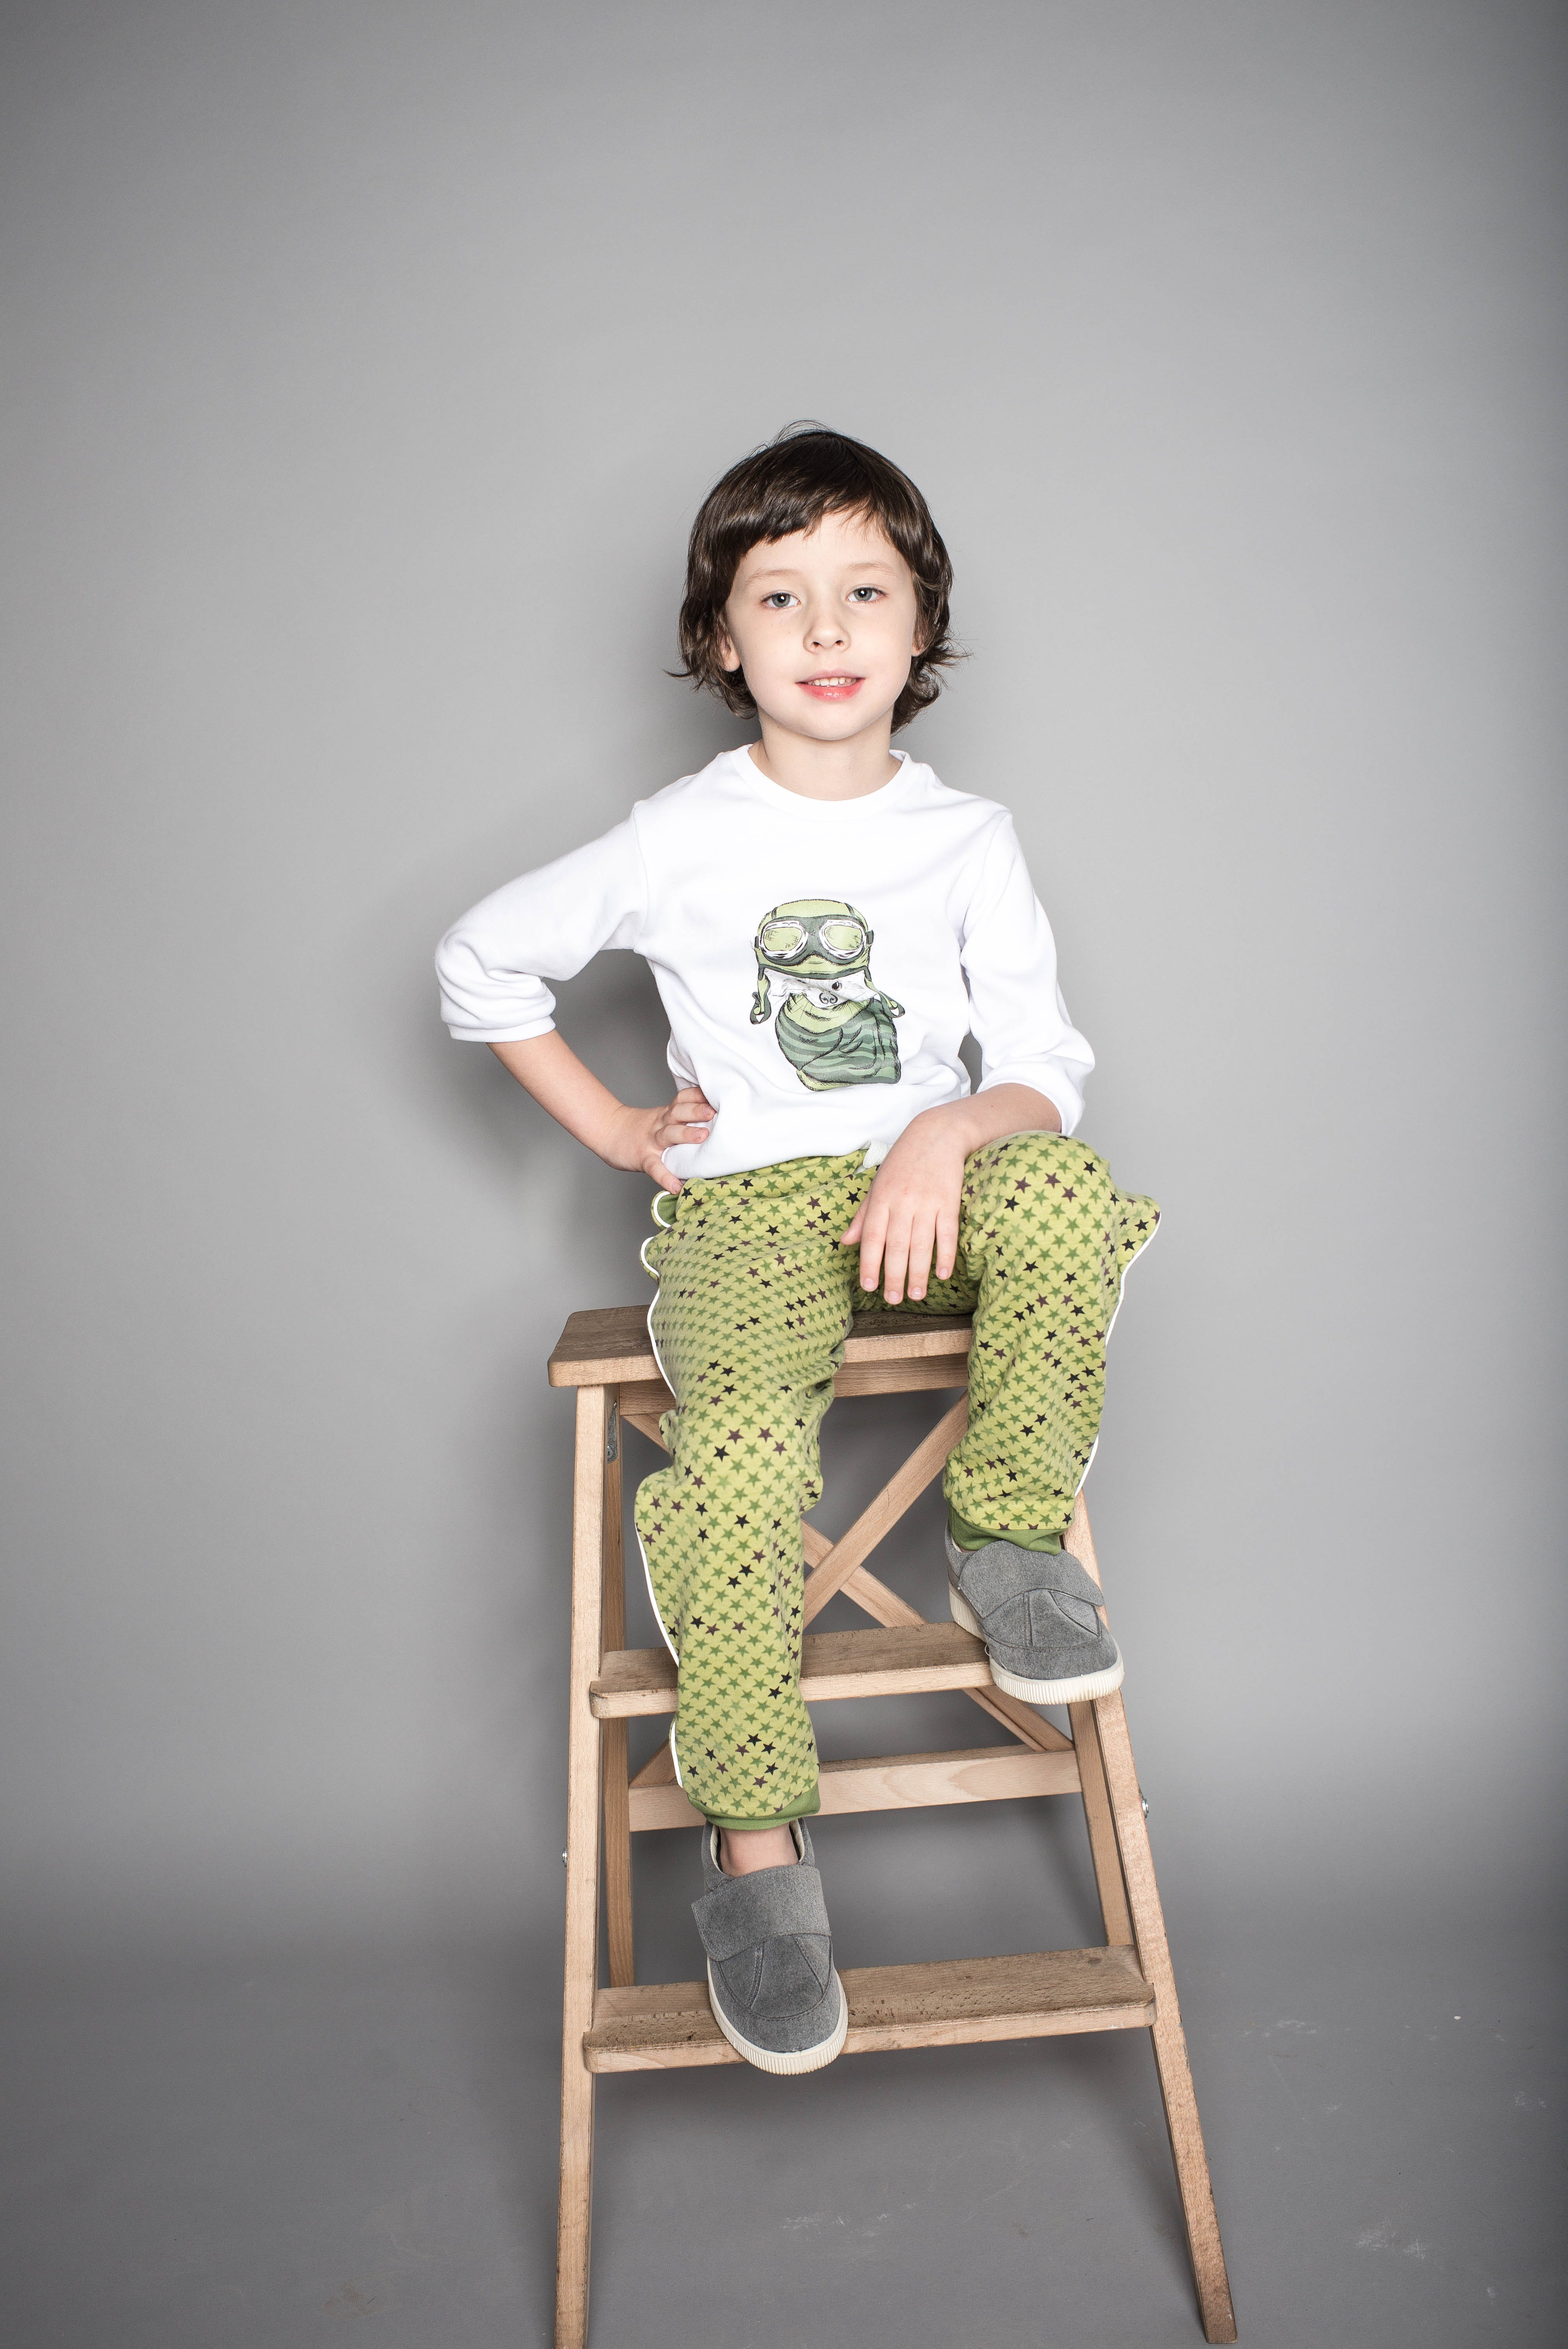 Boy Sitting on Beige Wooden Step Stool